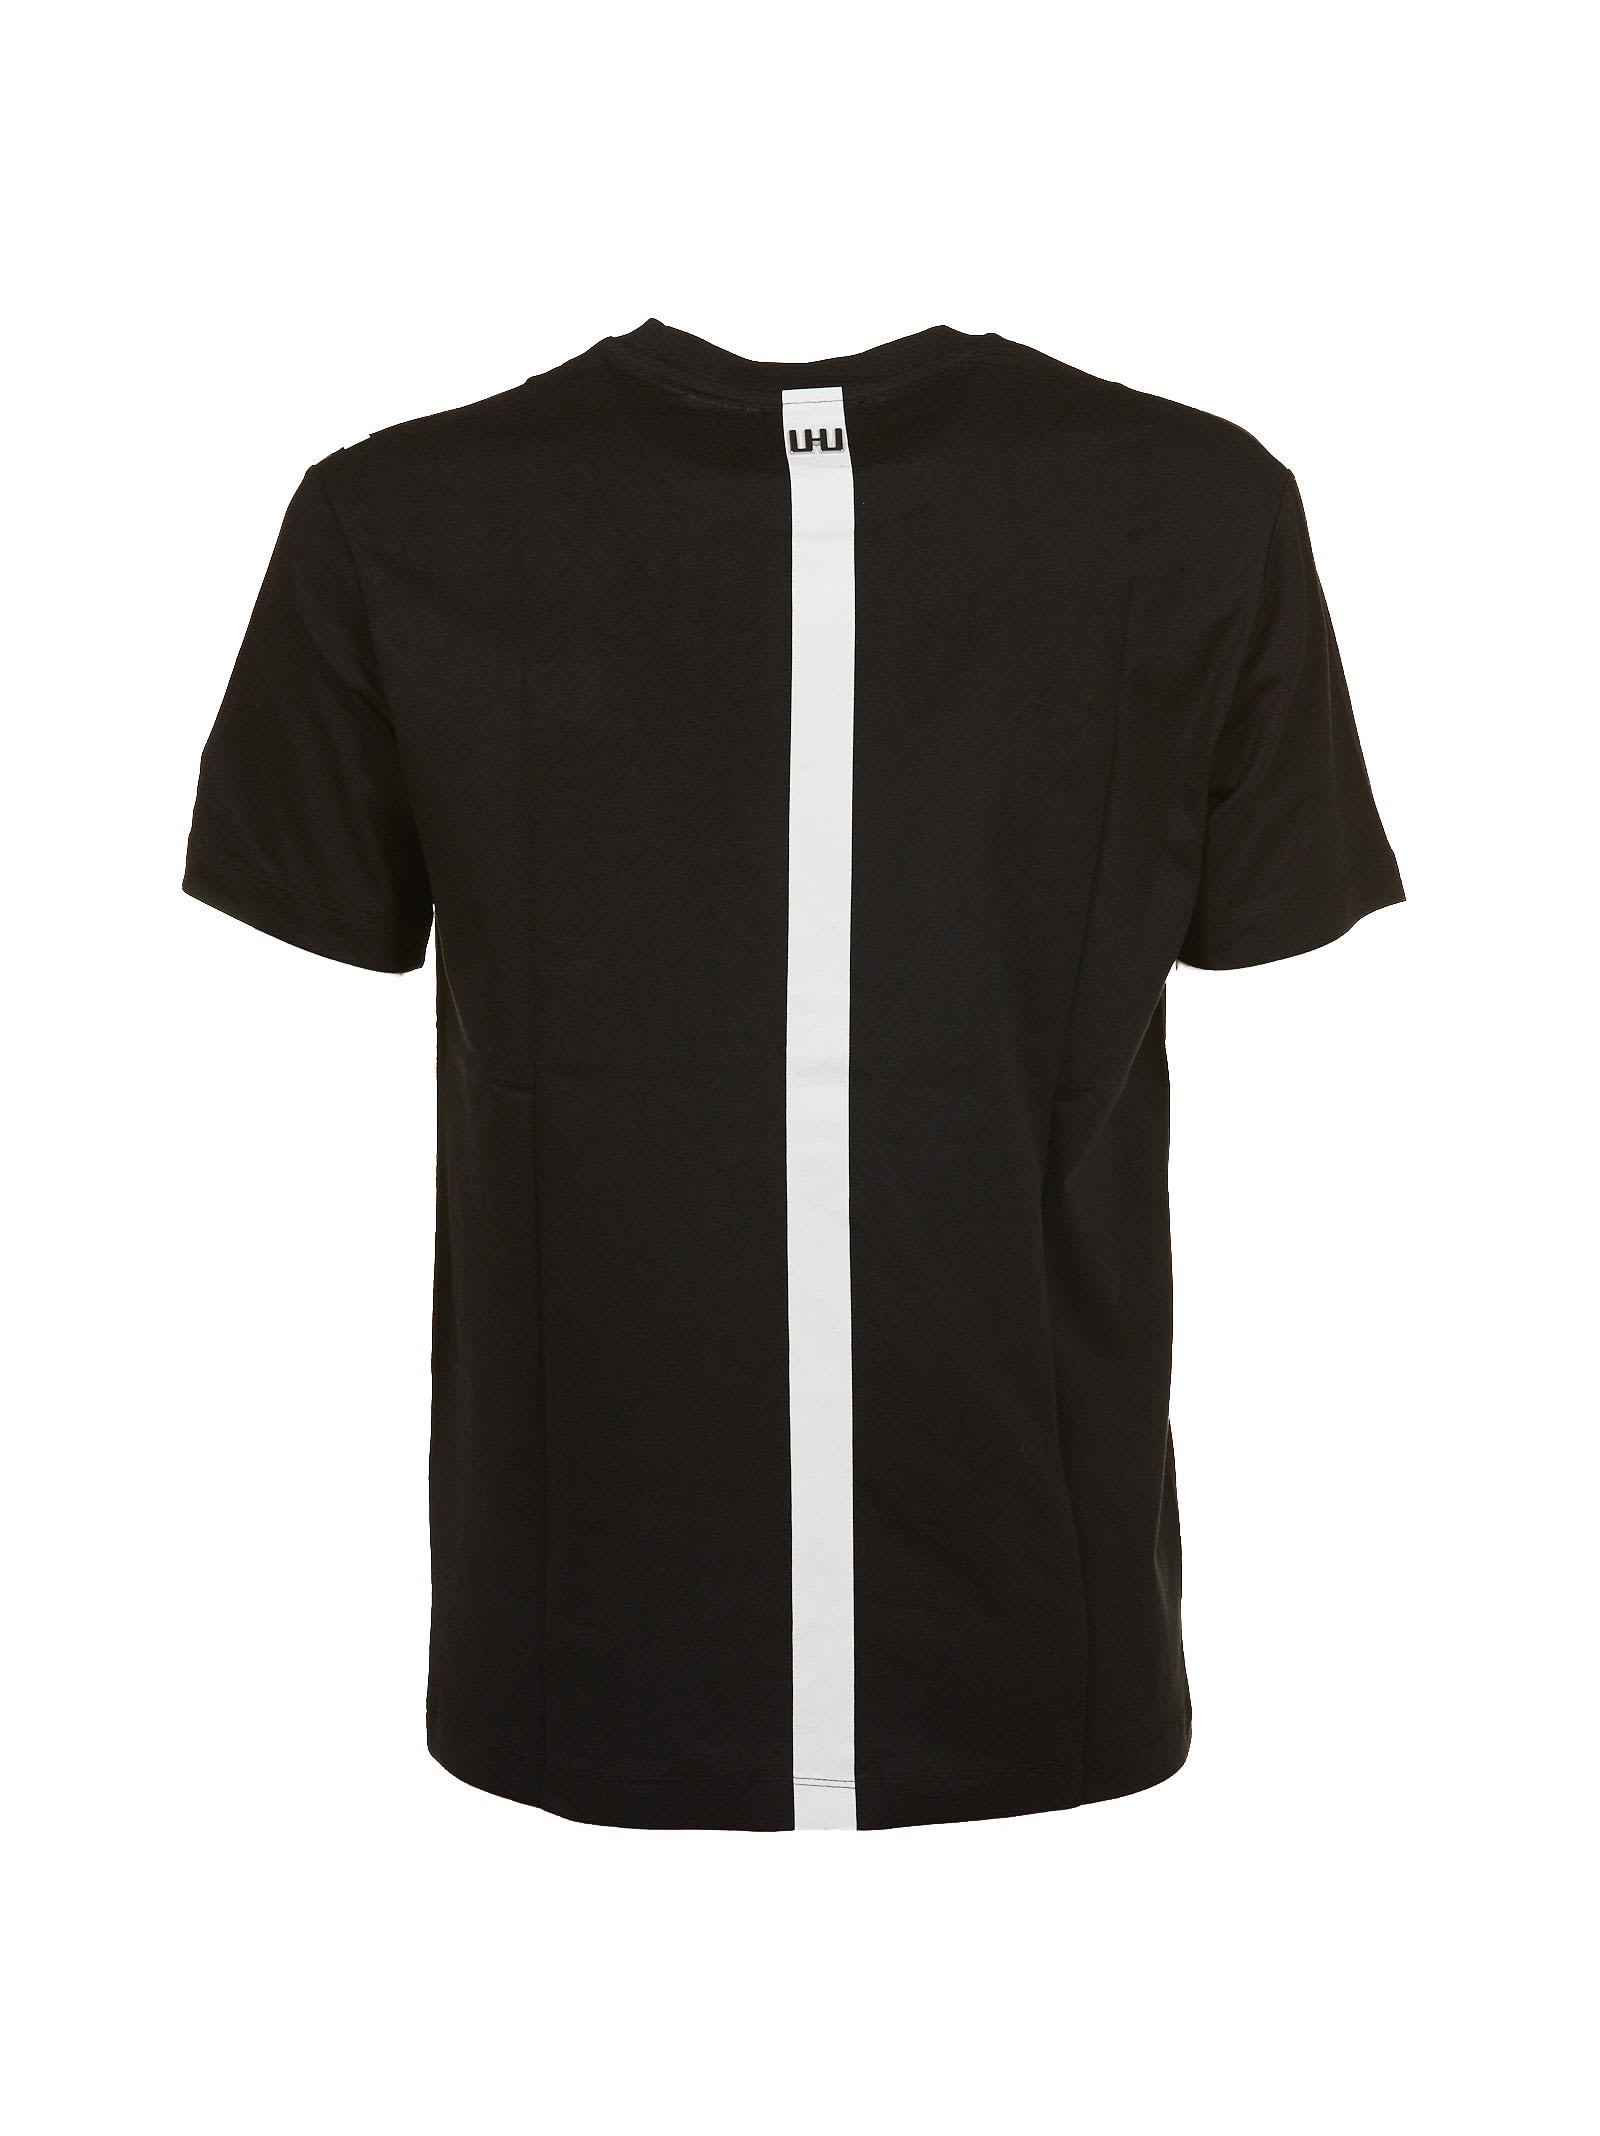 line print T-shirt - Black Les Hommes Low Shipping Fee For Sale Sale Clearance Store Clearance Low Cost rAgdT